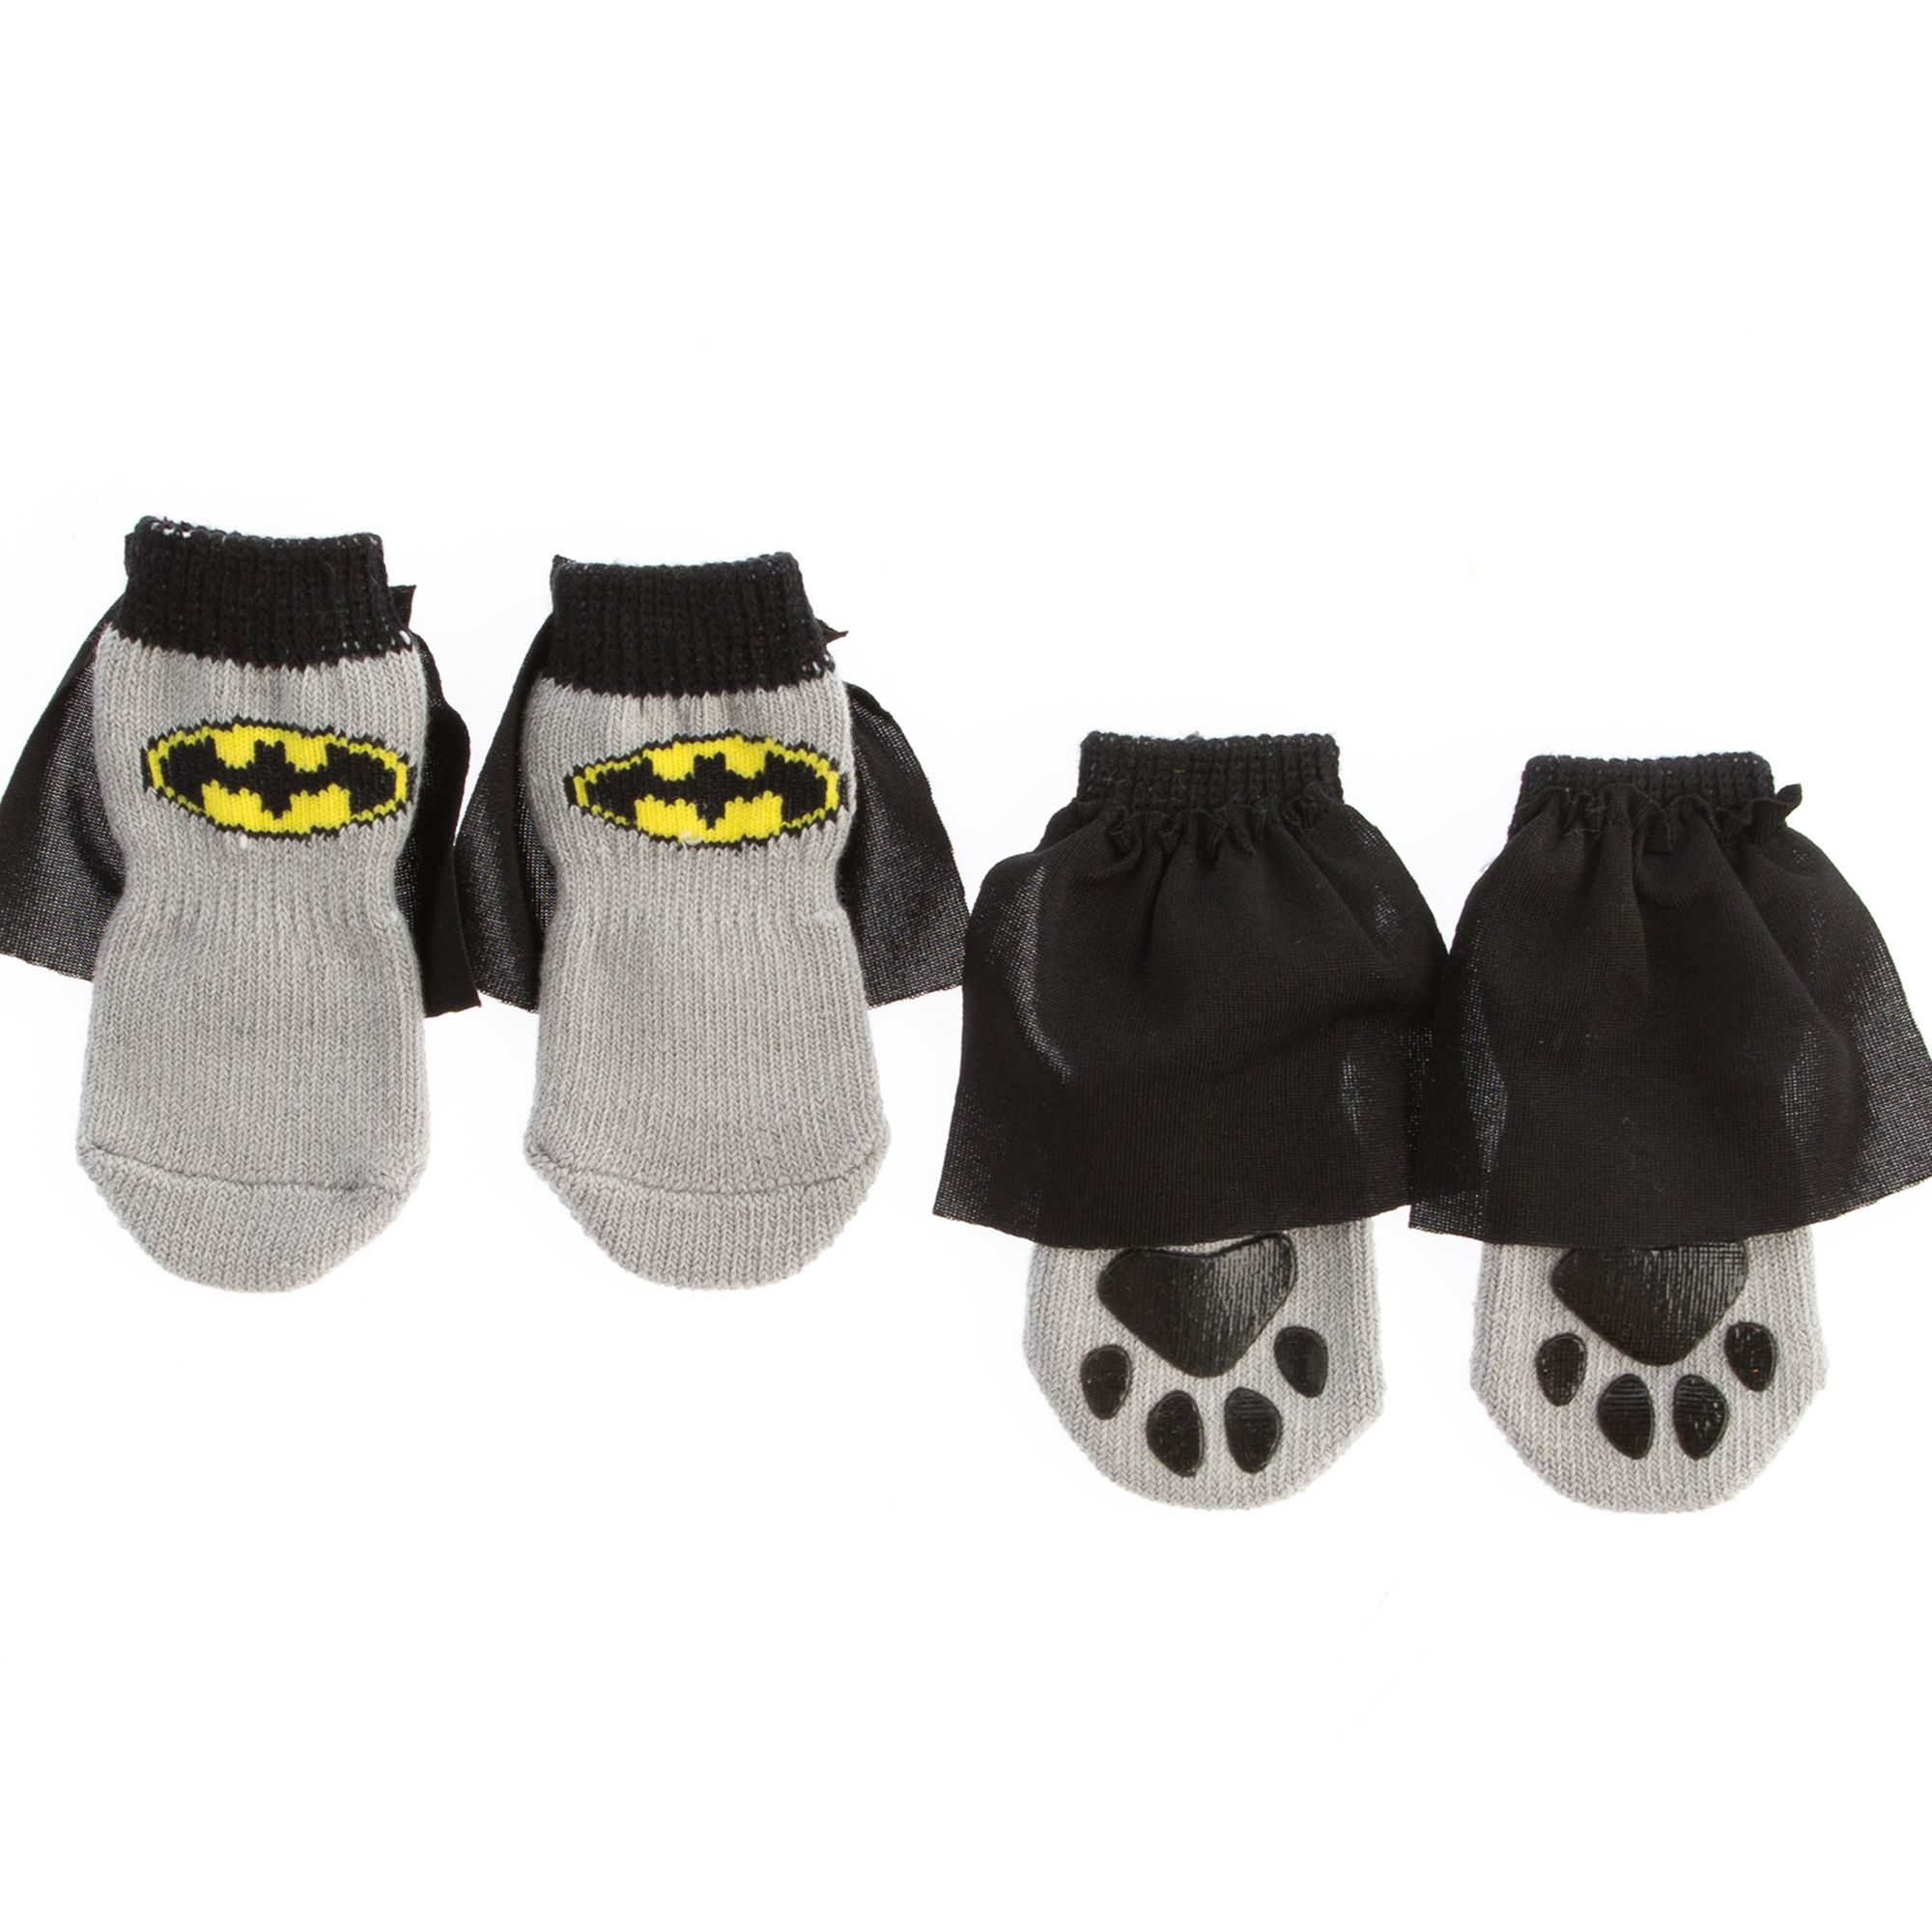 Dc Comics Batman Cape Dog Socks Size Small